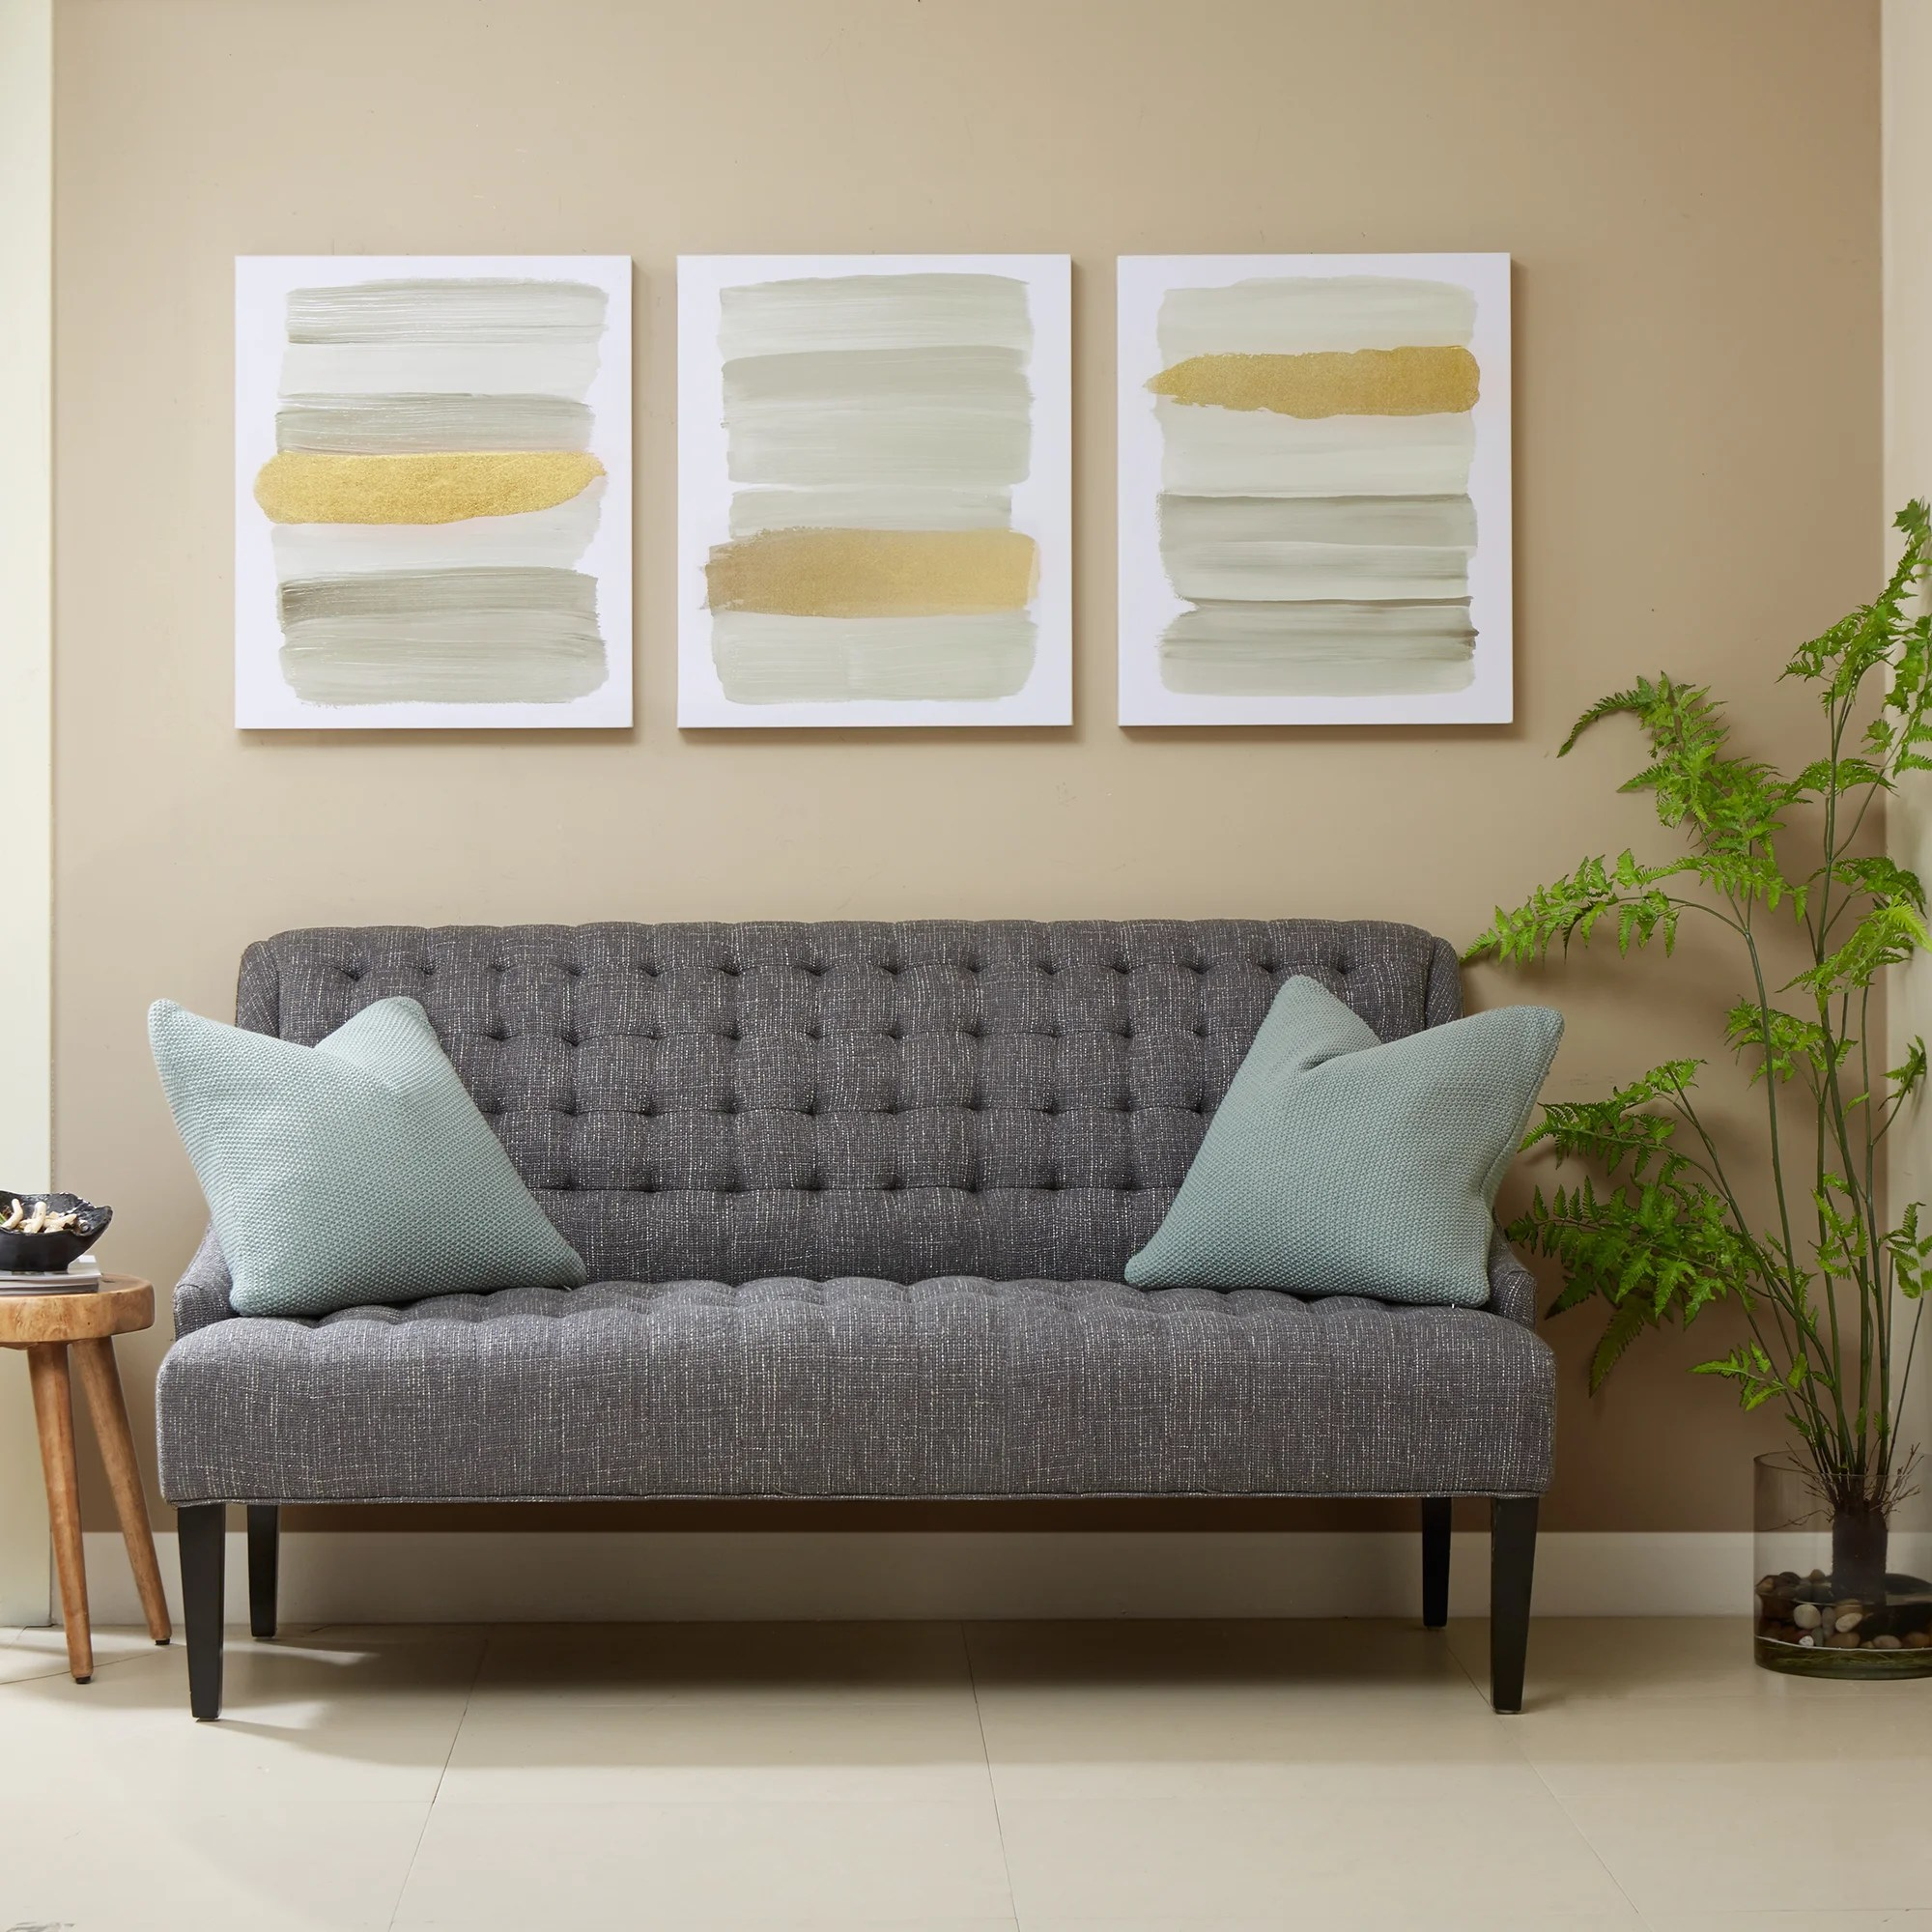 Habitat Sofa Carson Carrington Urban Habitat Traveling Road 3 Piece Printed Canvas With Gold Foil Set